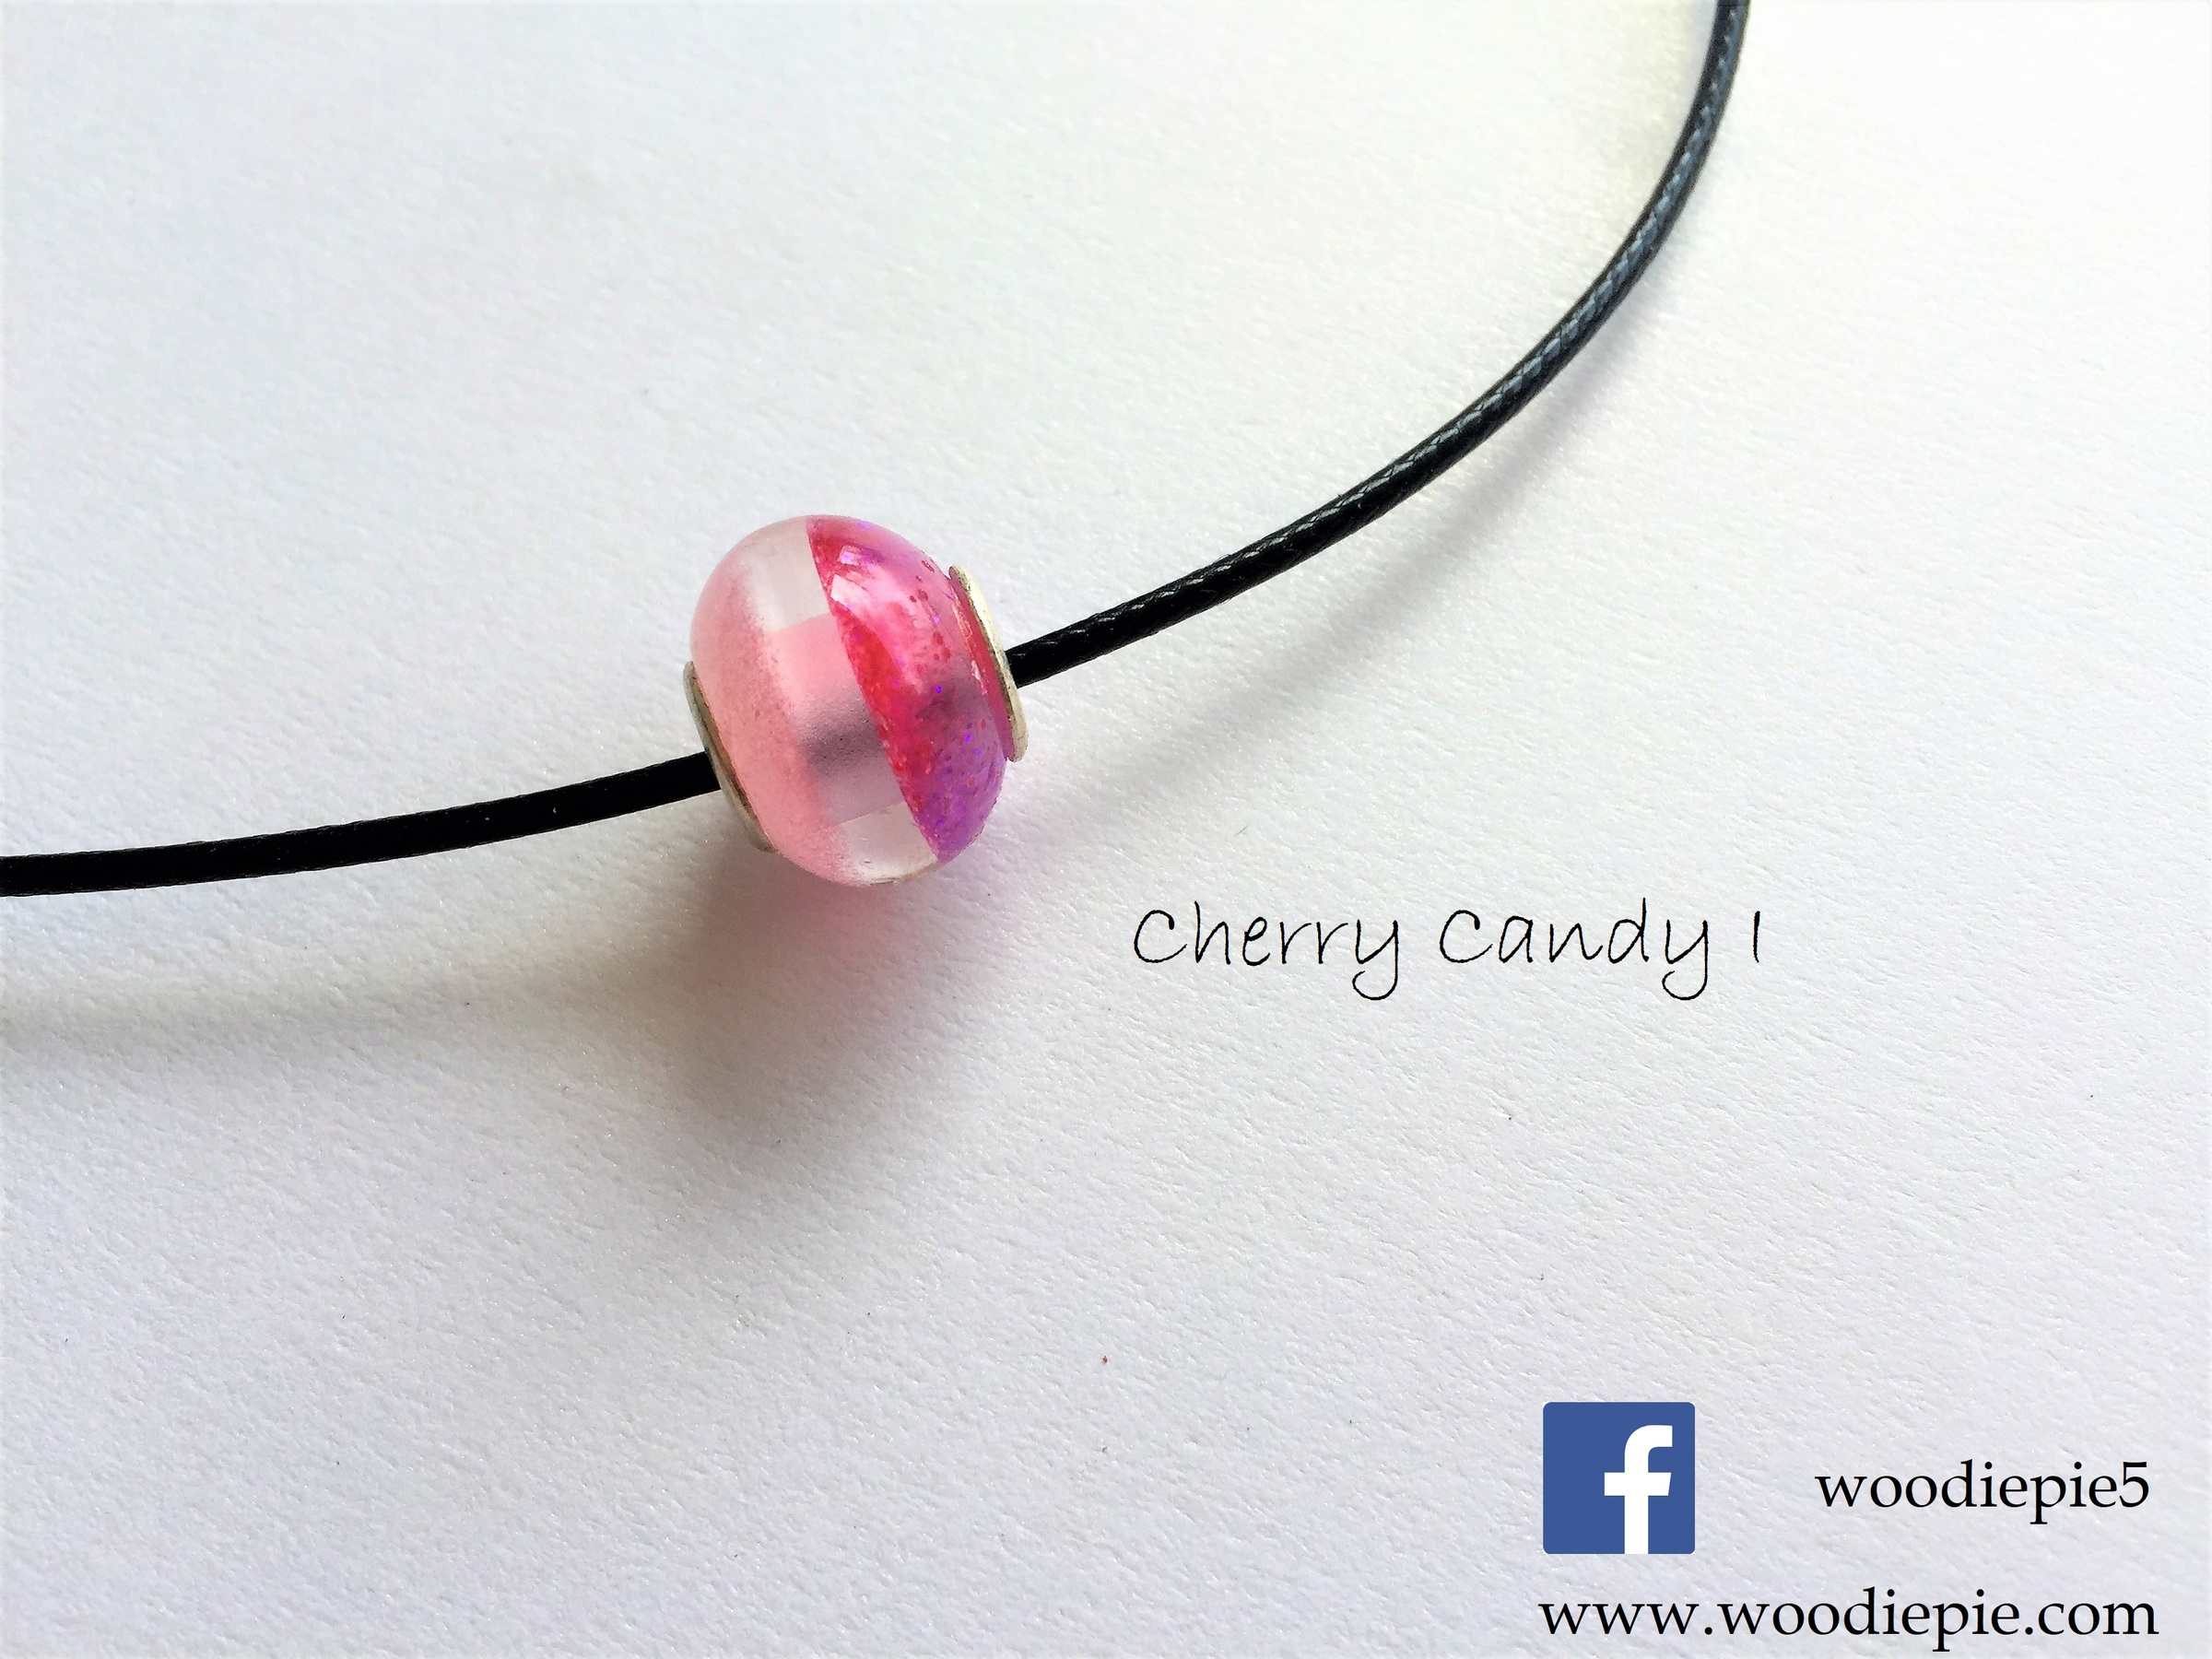 Cherry candy charm3 - Copy - Copy.JPG